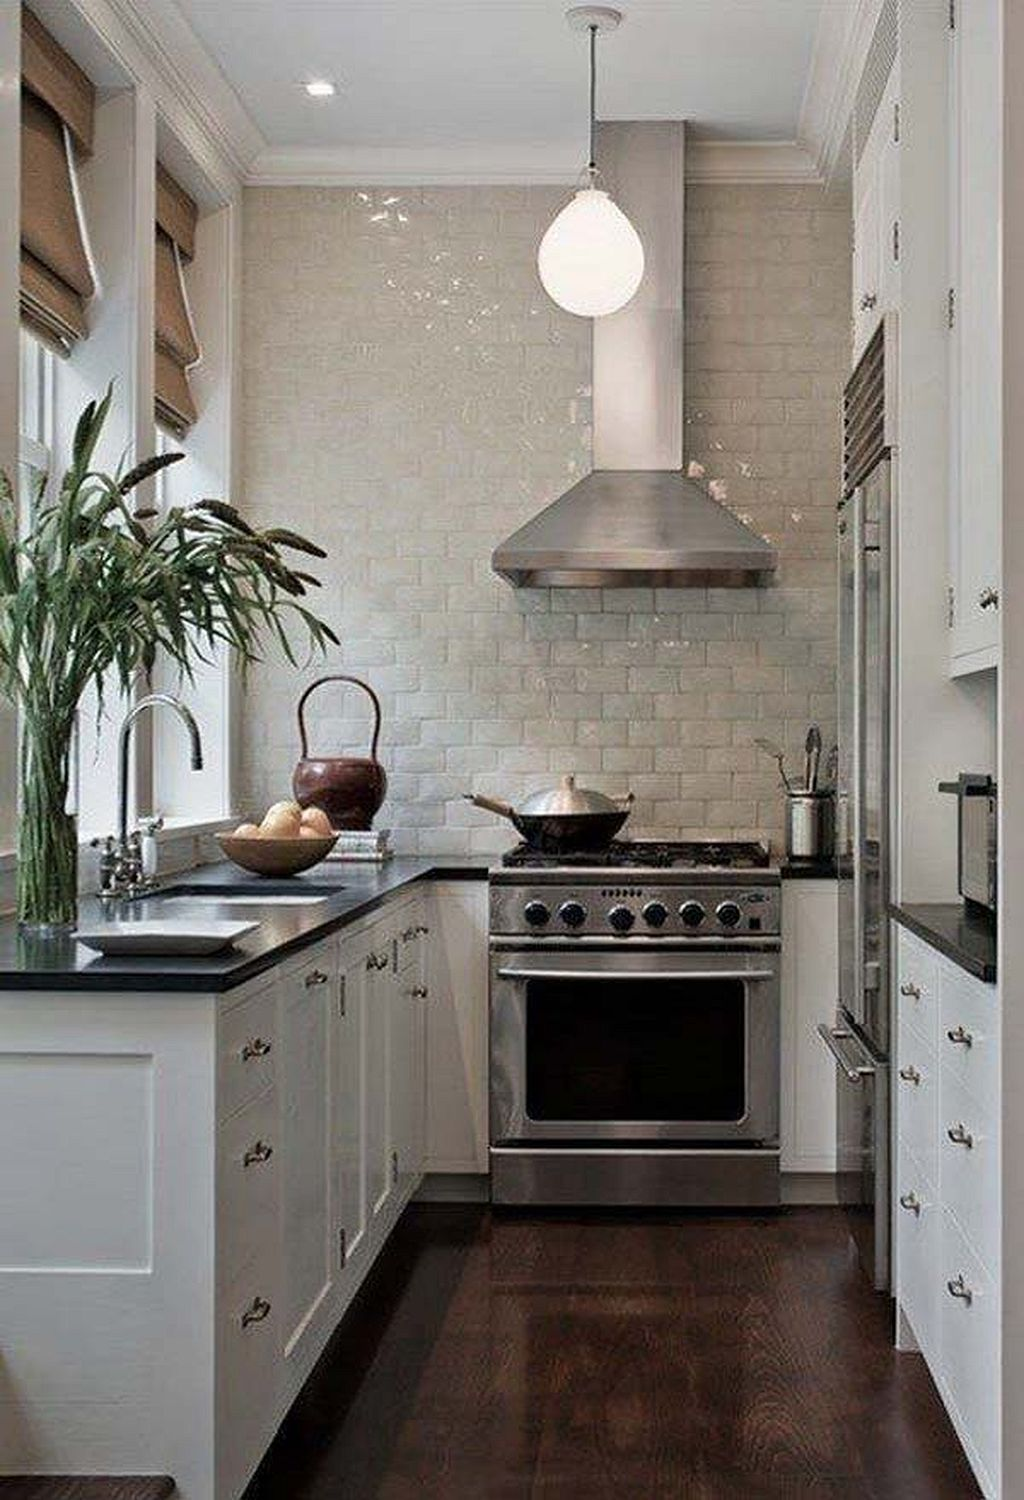 30 awesome u shaped kitchen designs for small spaces kitchen remodel small kitchen design on u kitchen remodel id=15468